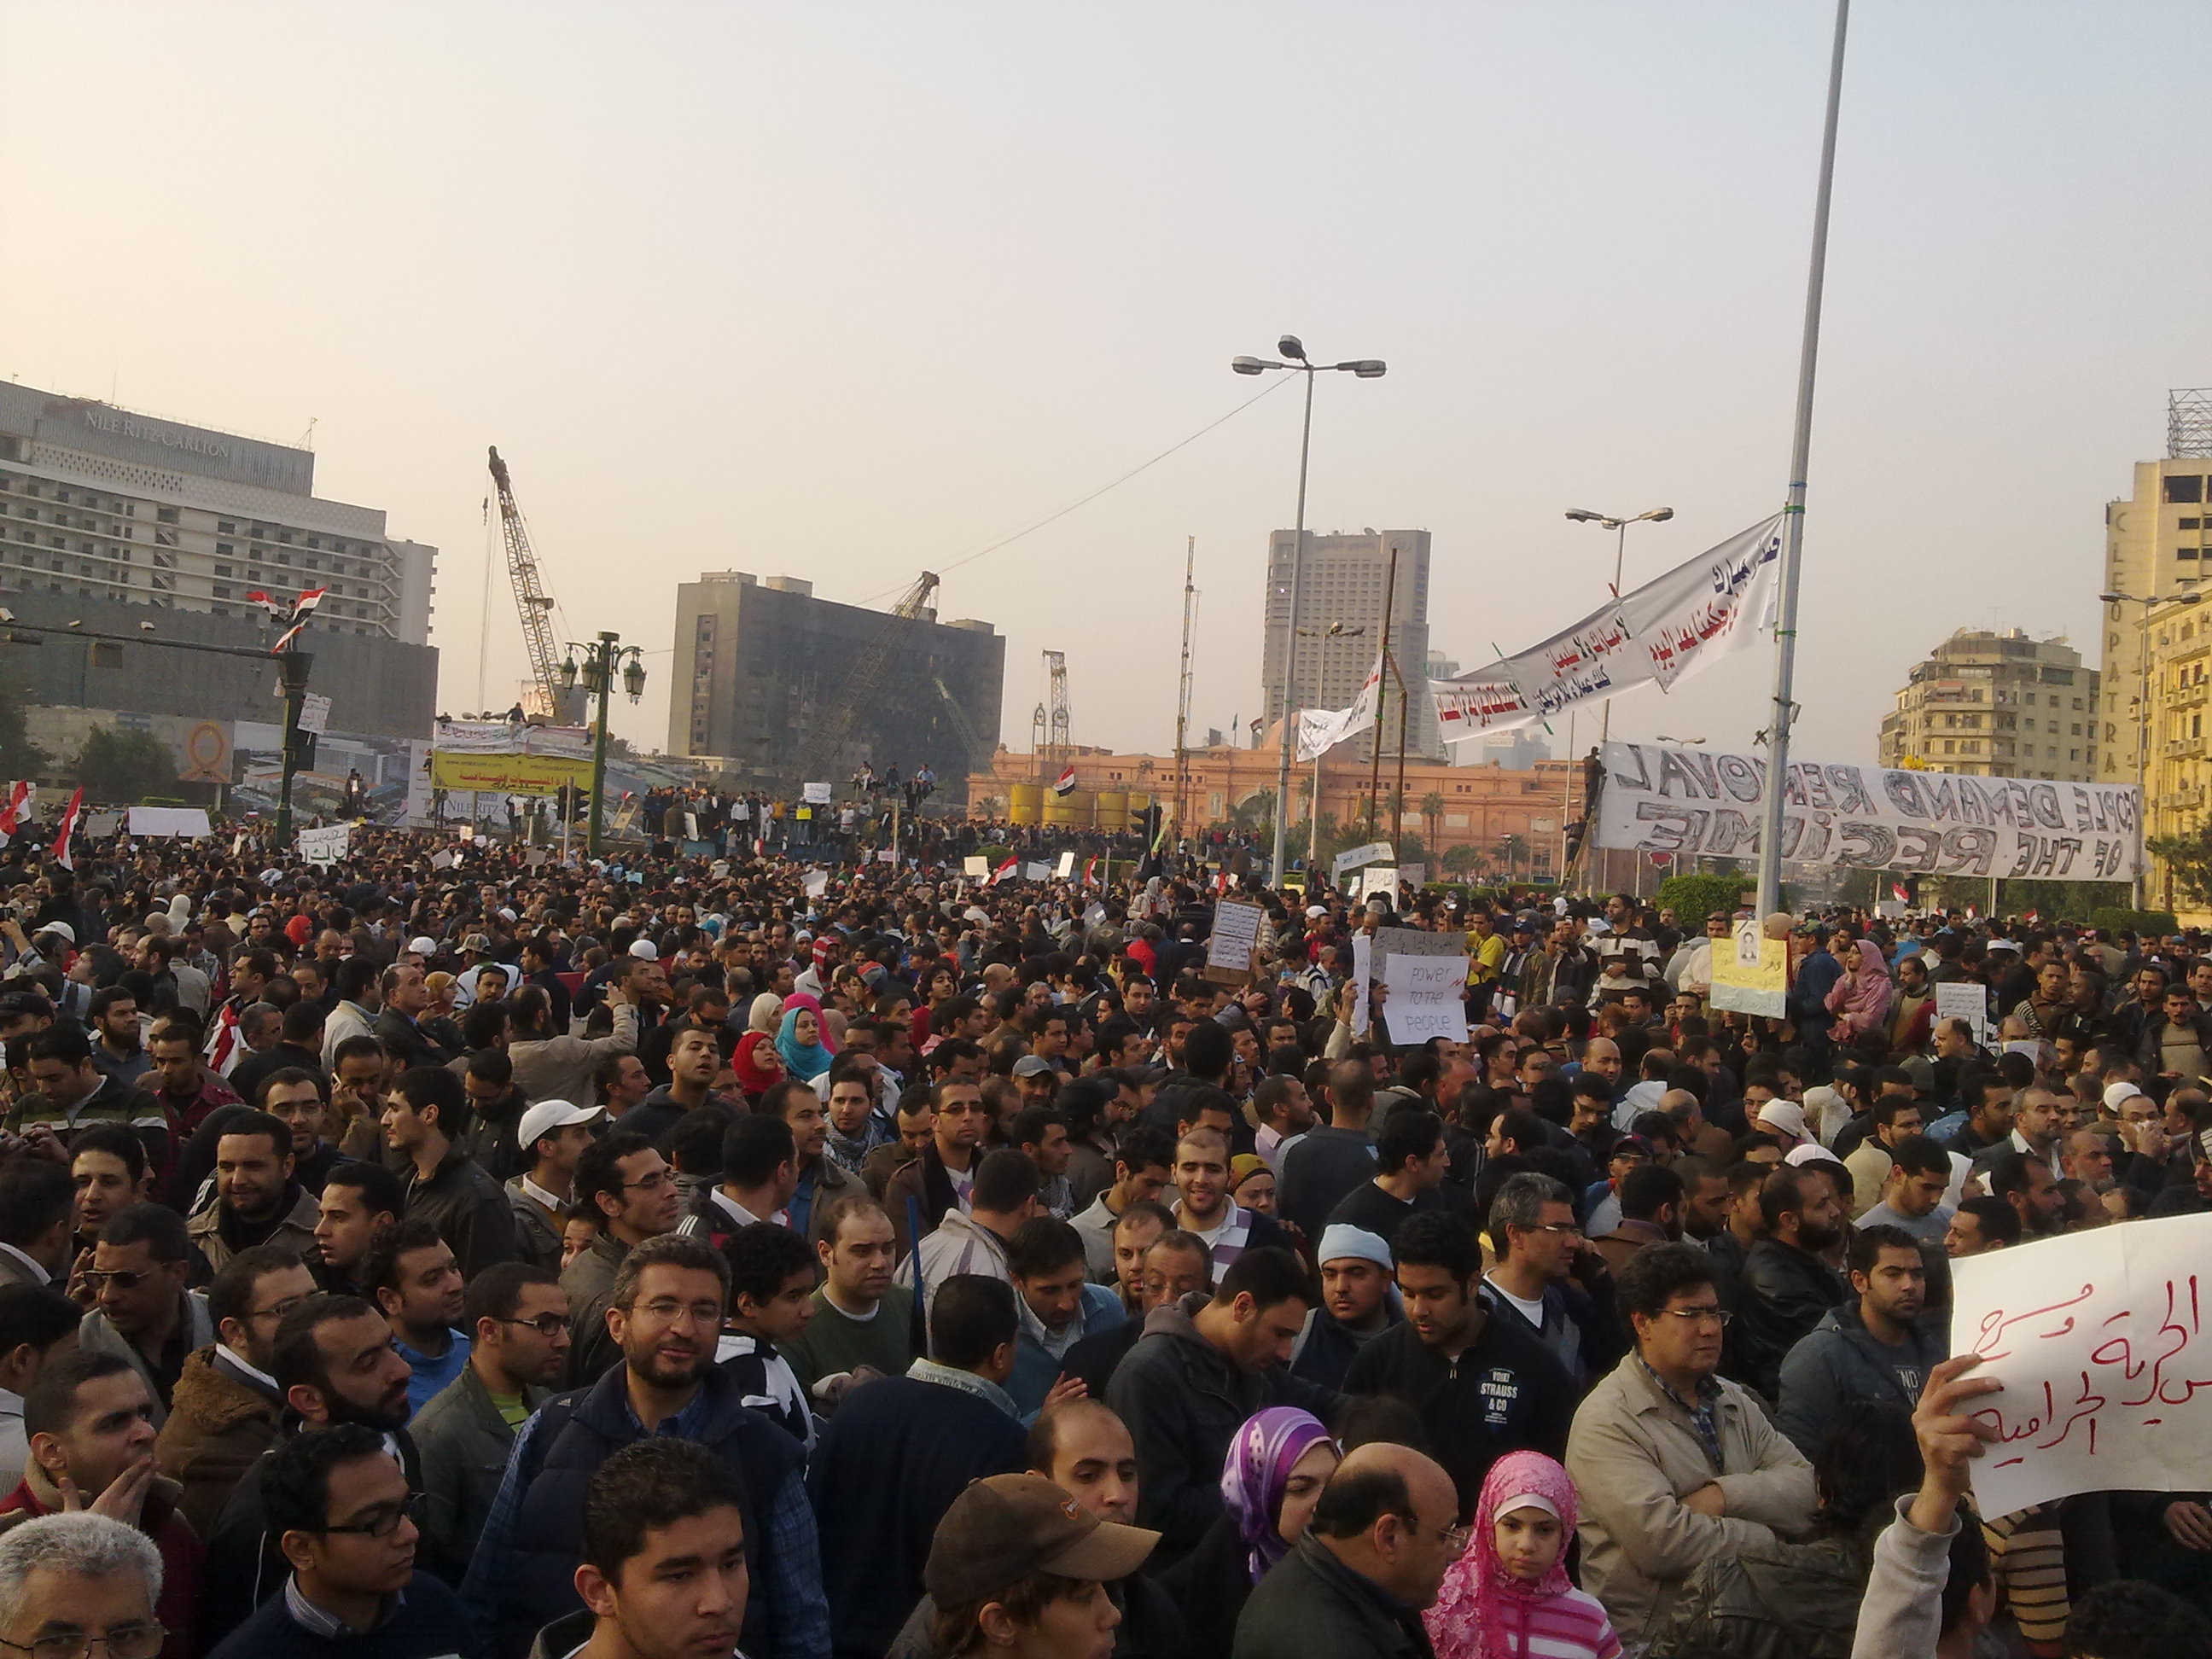 Crowd_in_Midan_El-Tahrird_During_the_2011_Egyptian_Protests